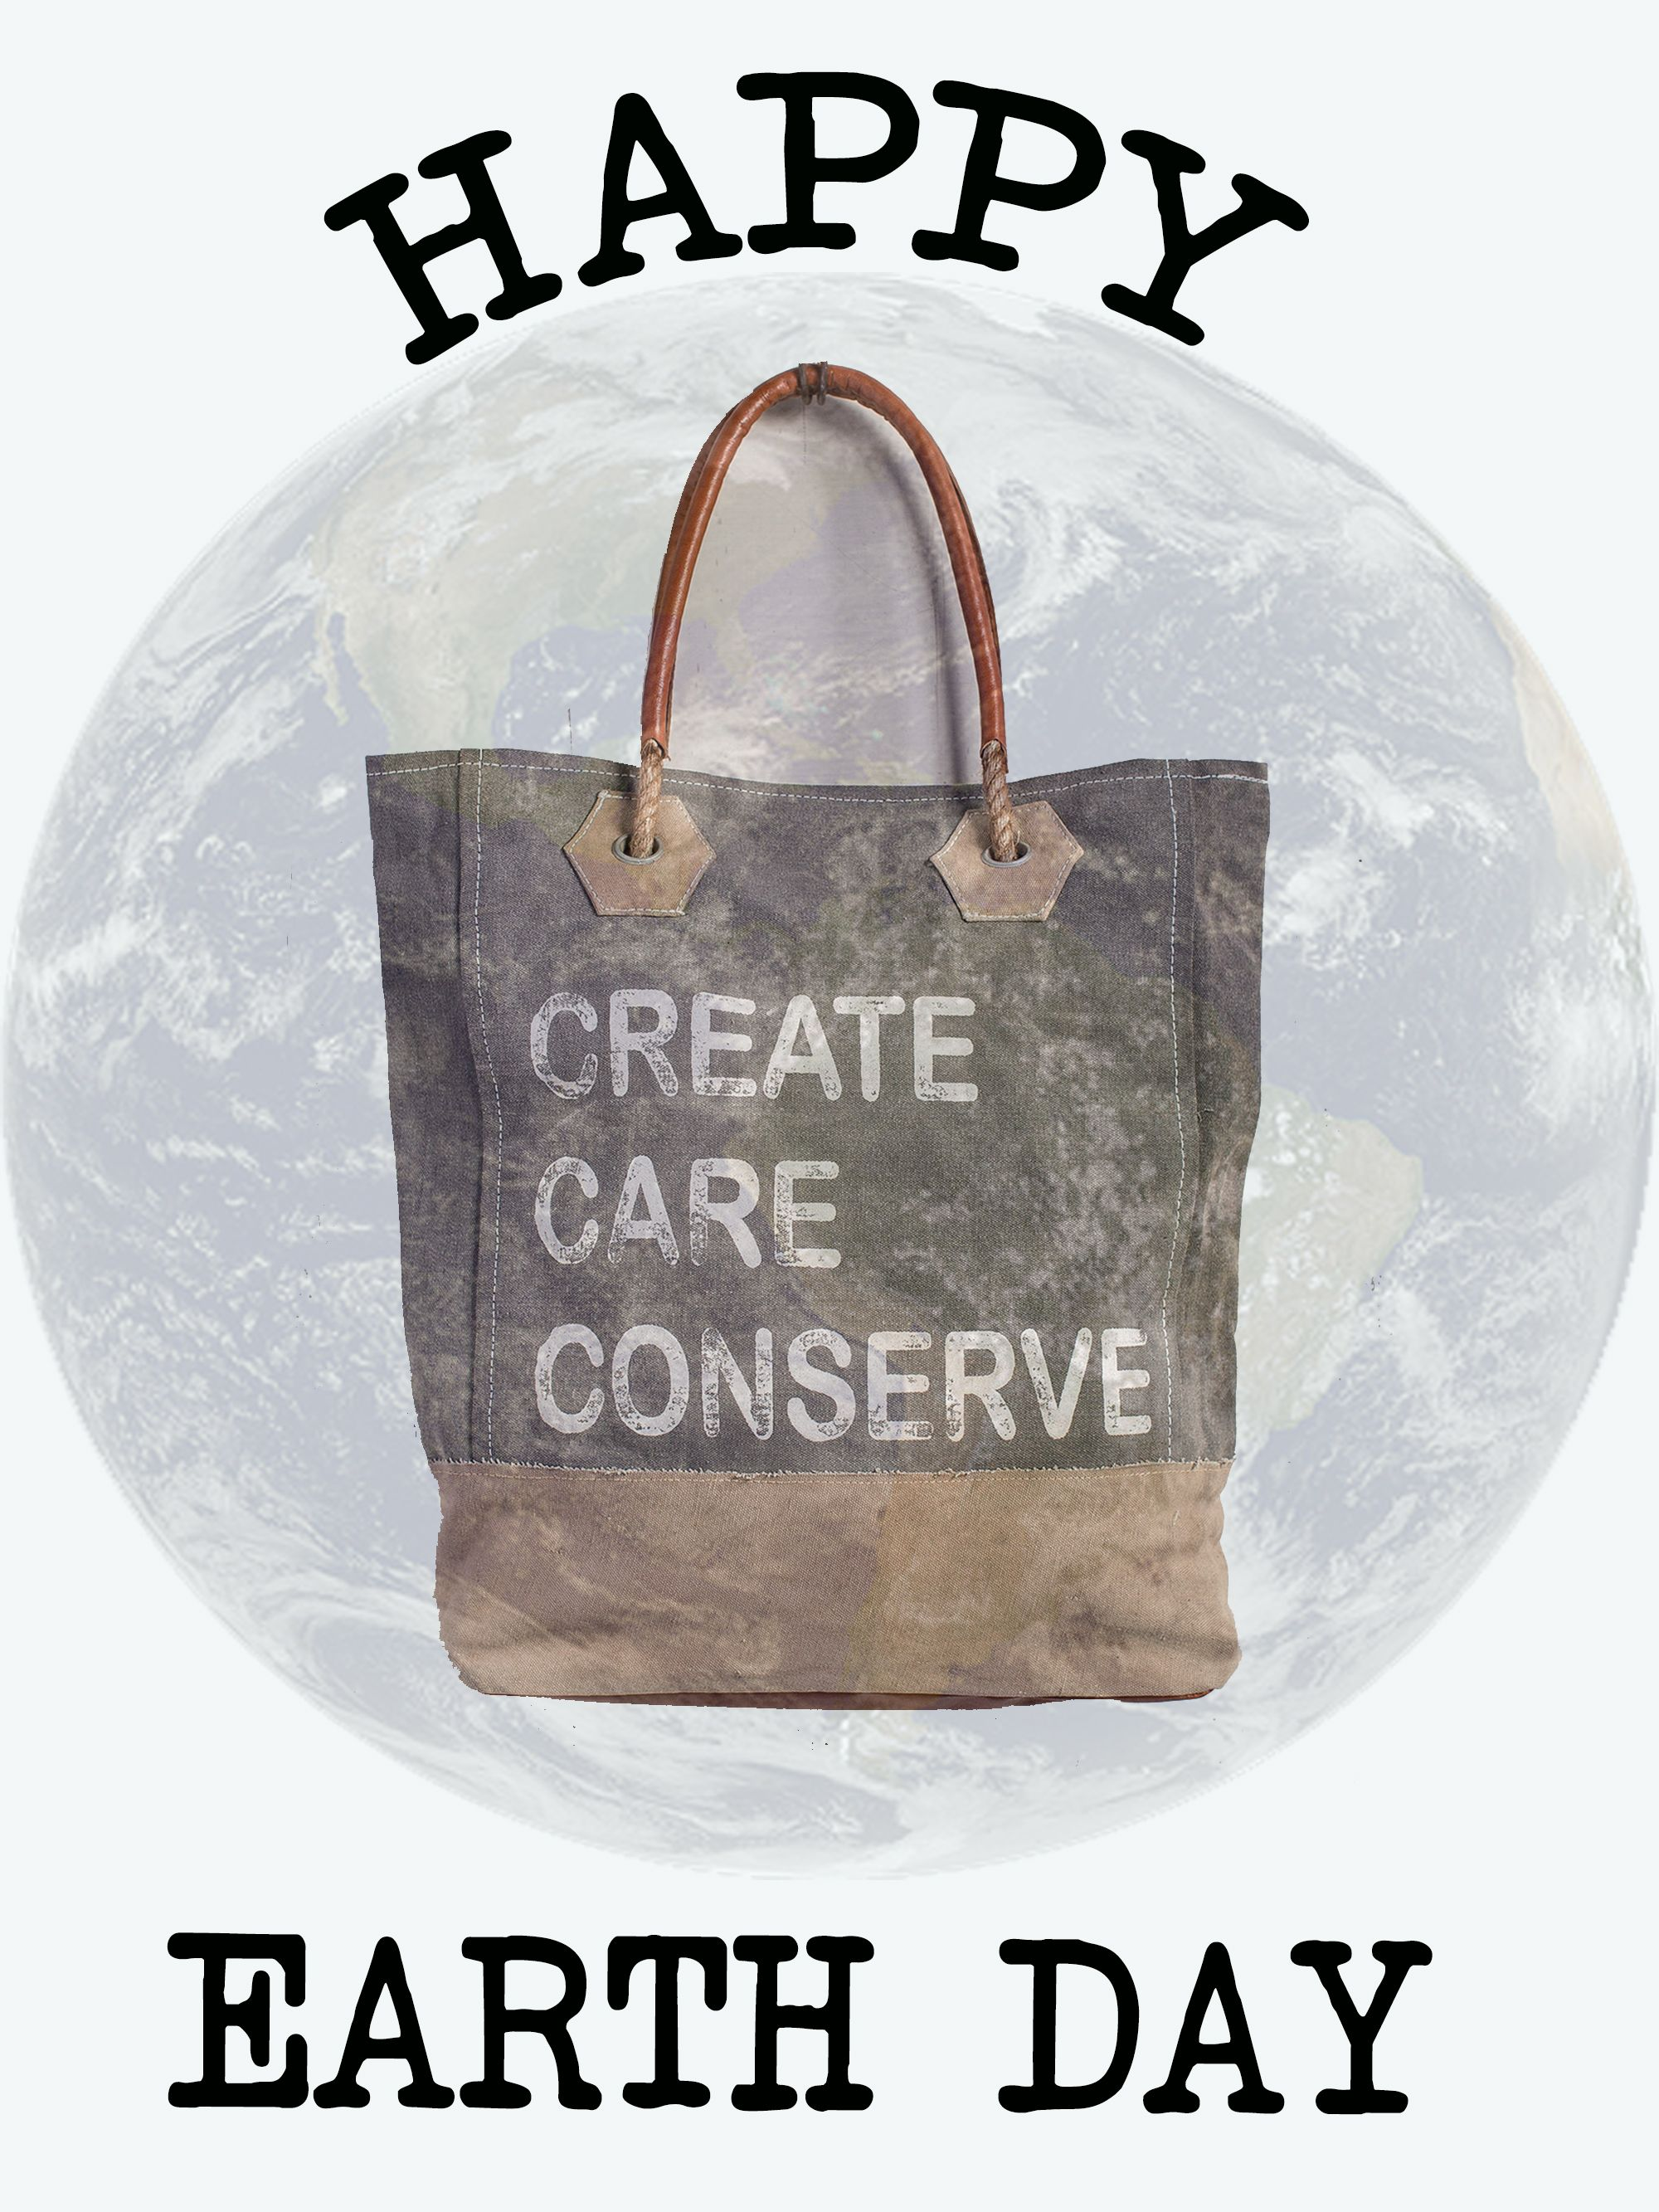 Happy #EarthDay from Mona B upcycled canvas bags.  Remember to reduce, reuse and #recycle!